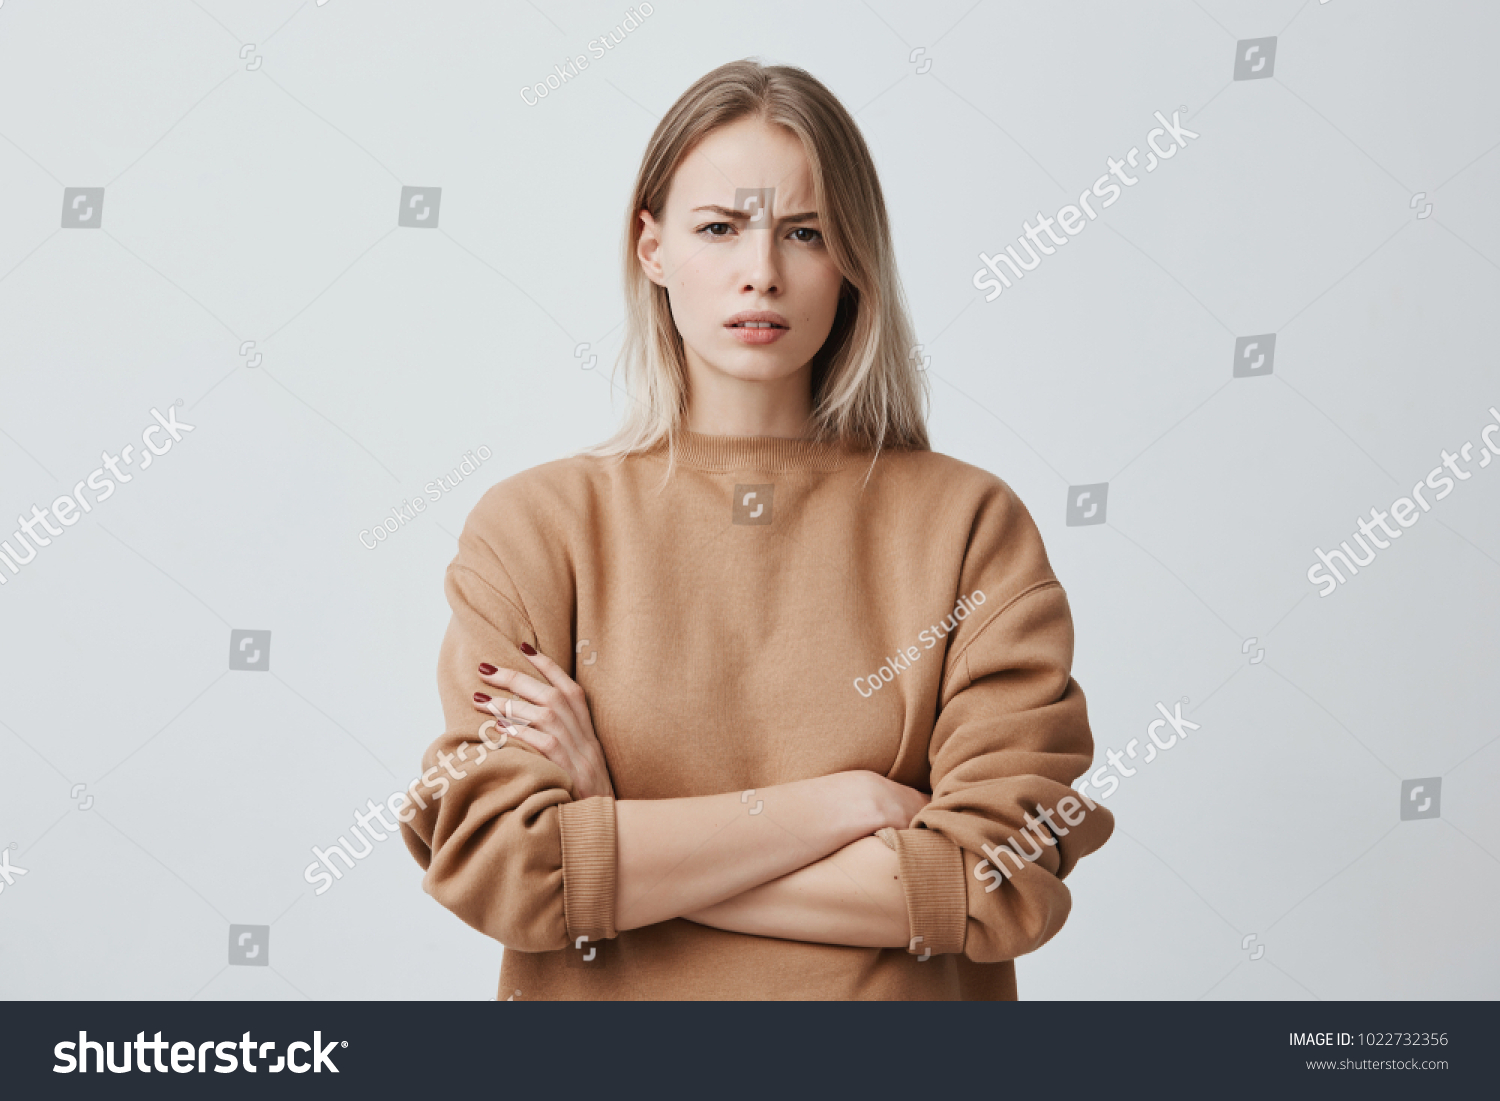 Waist-up portrait of beautiful girl with blonde straight hair frowning her face in displeasure, wearing loose long-sleeved sweater, keeping arms folded. Attractive young woman in closed posture.